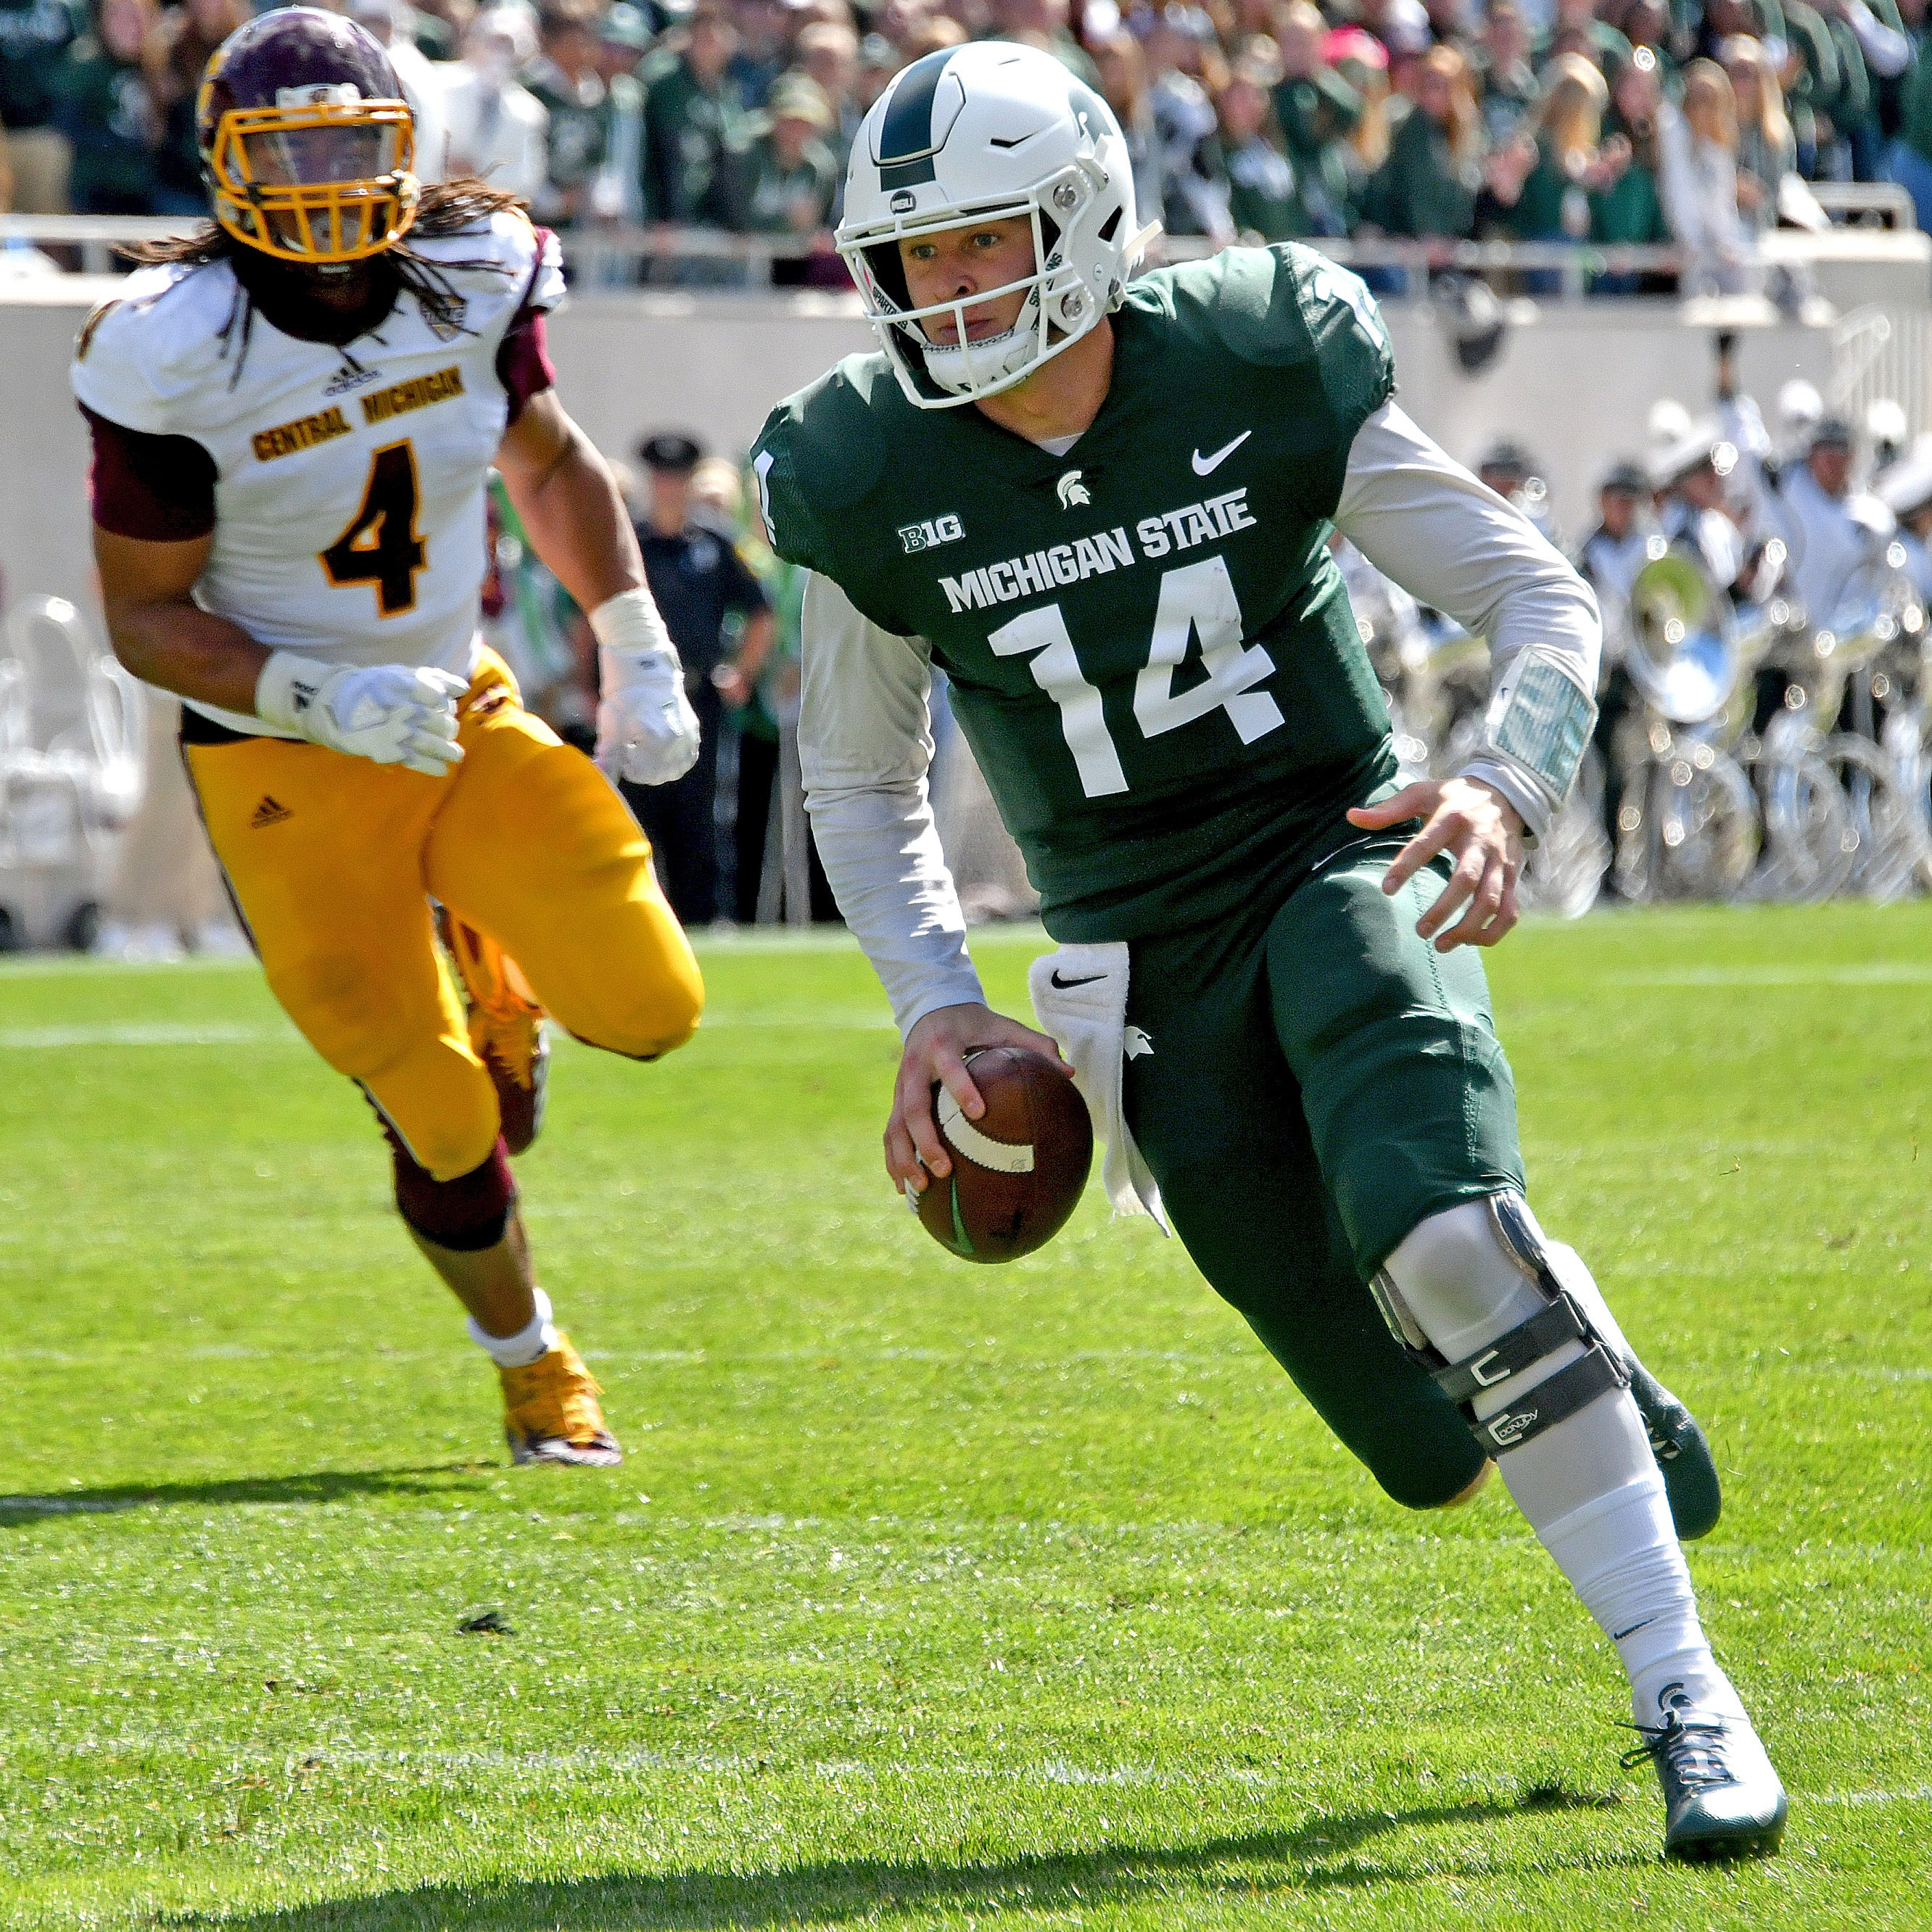 Michigan State's offense getting its swagger back